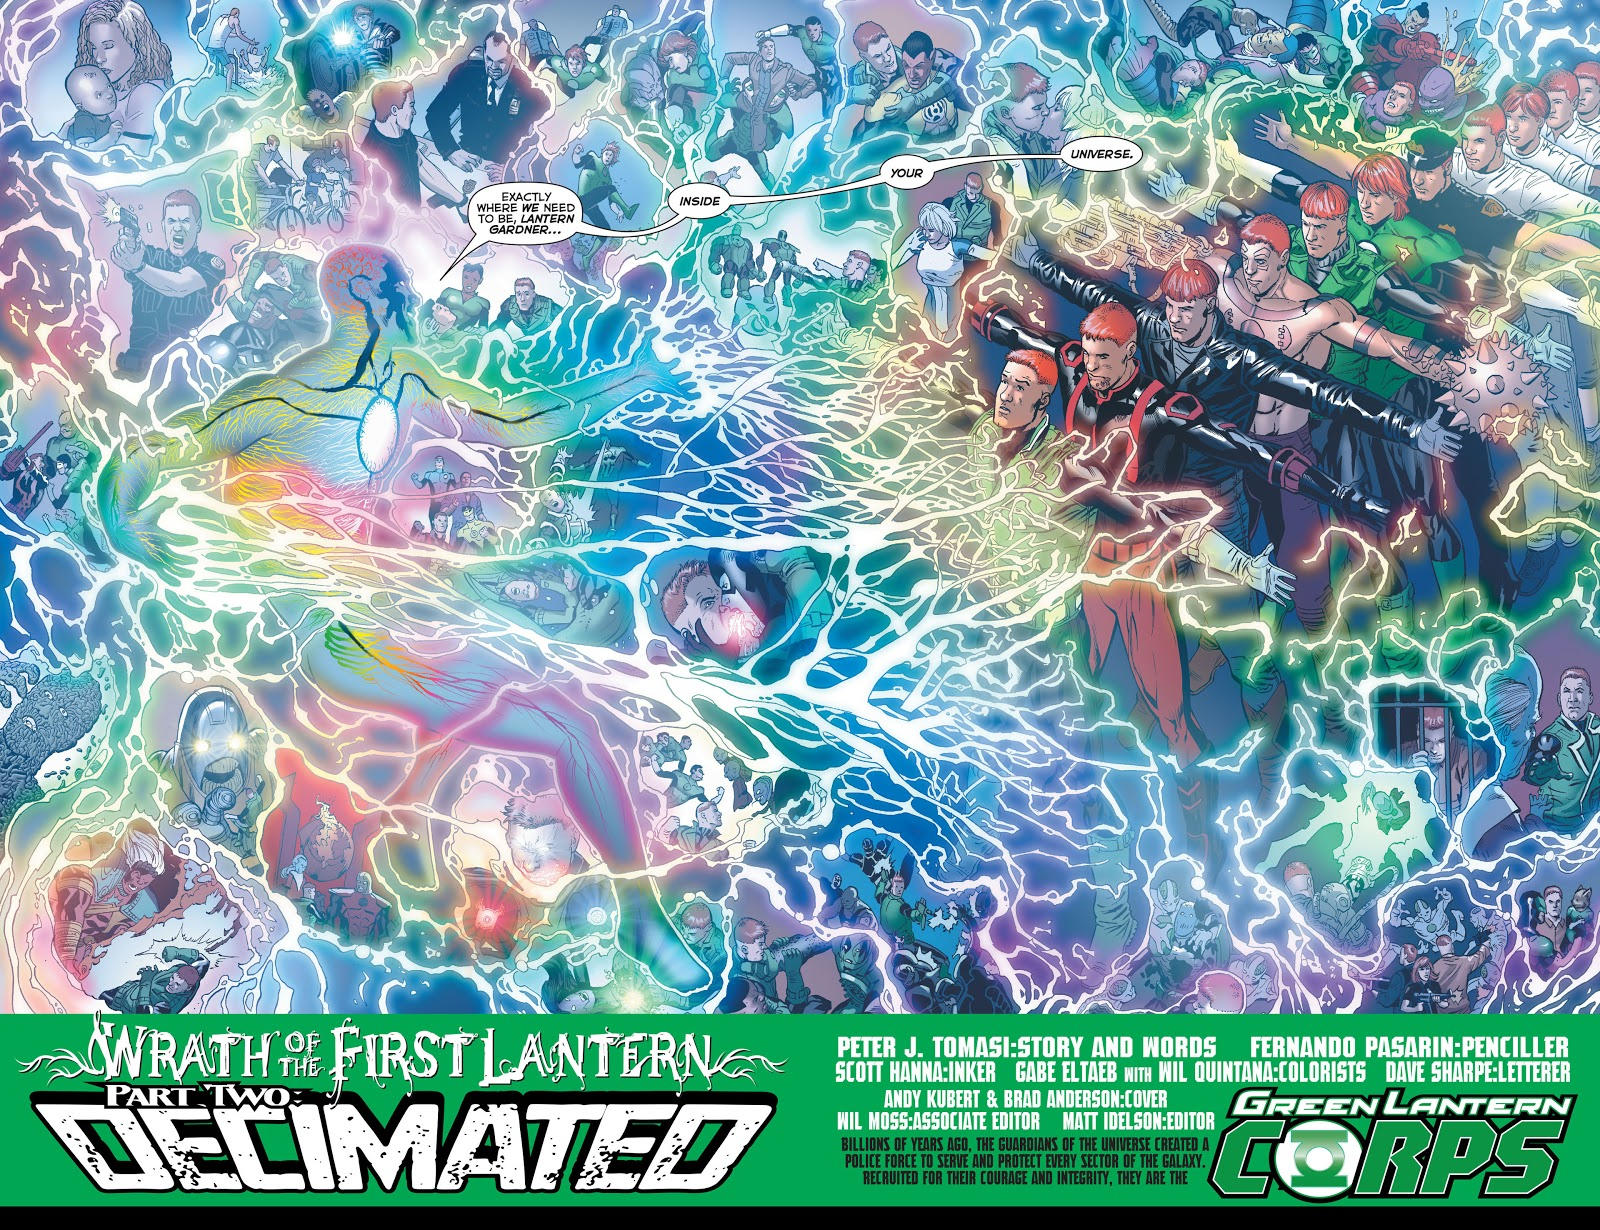 Green Lantern Corps V3 Willpower review